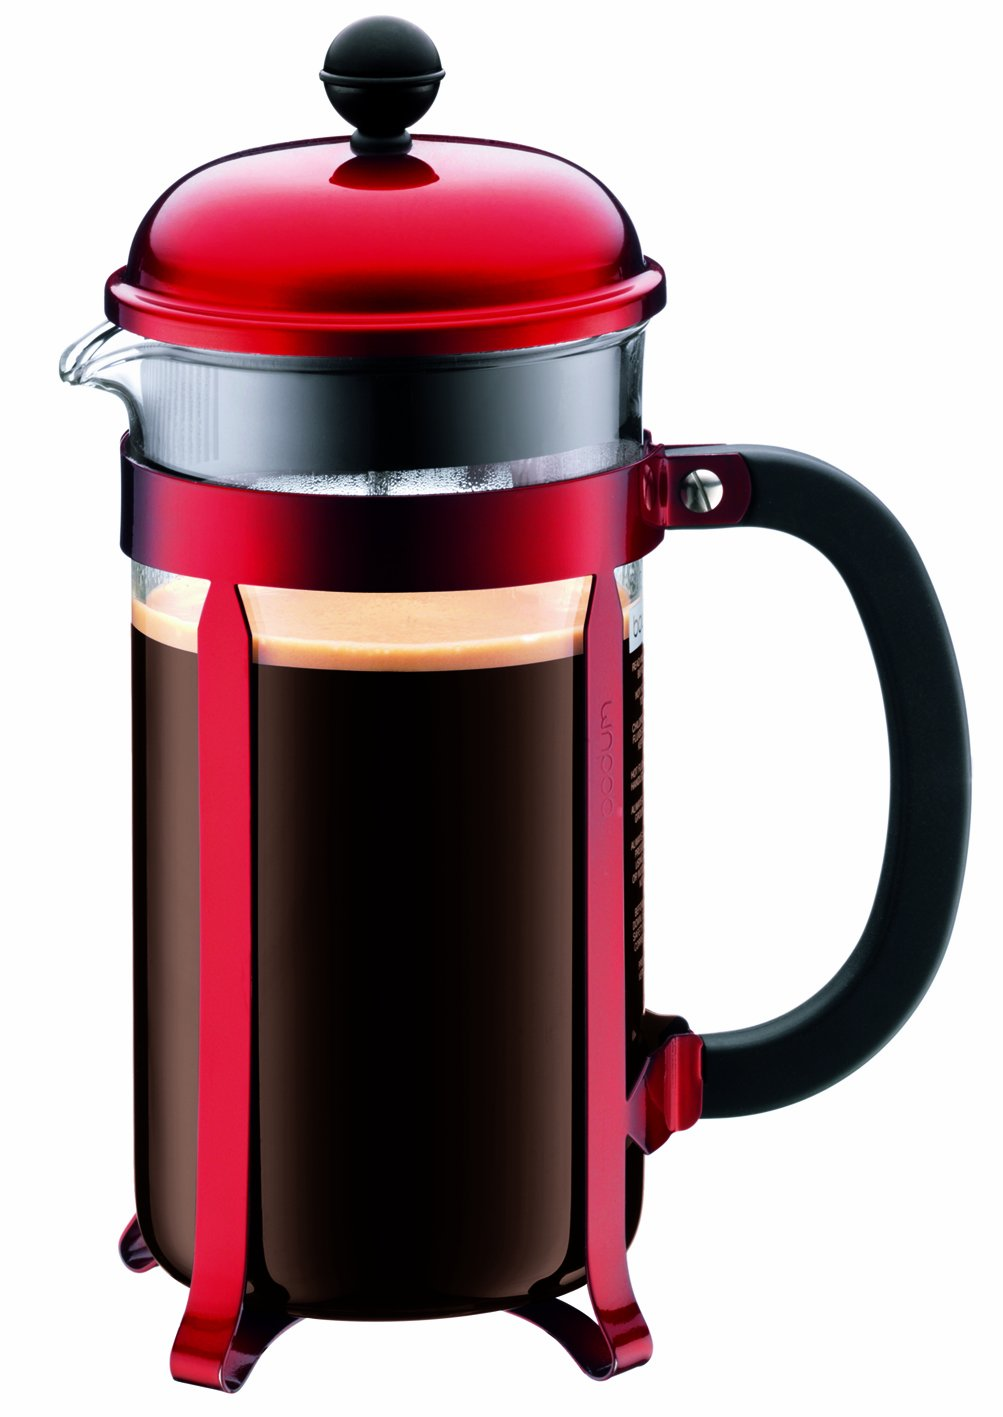 Bed bath beyond french press - Amazon Com Bodum Red Chambord 8 Cup Coffee Maker French Presses Kitchen Dining